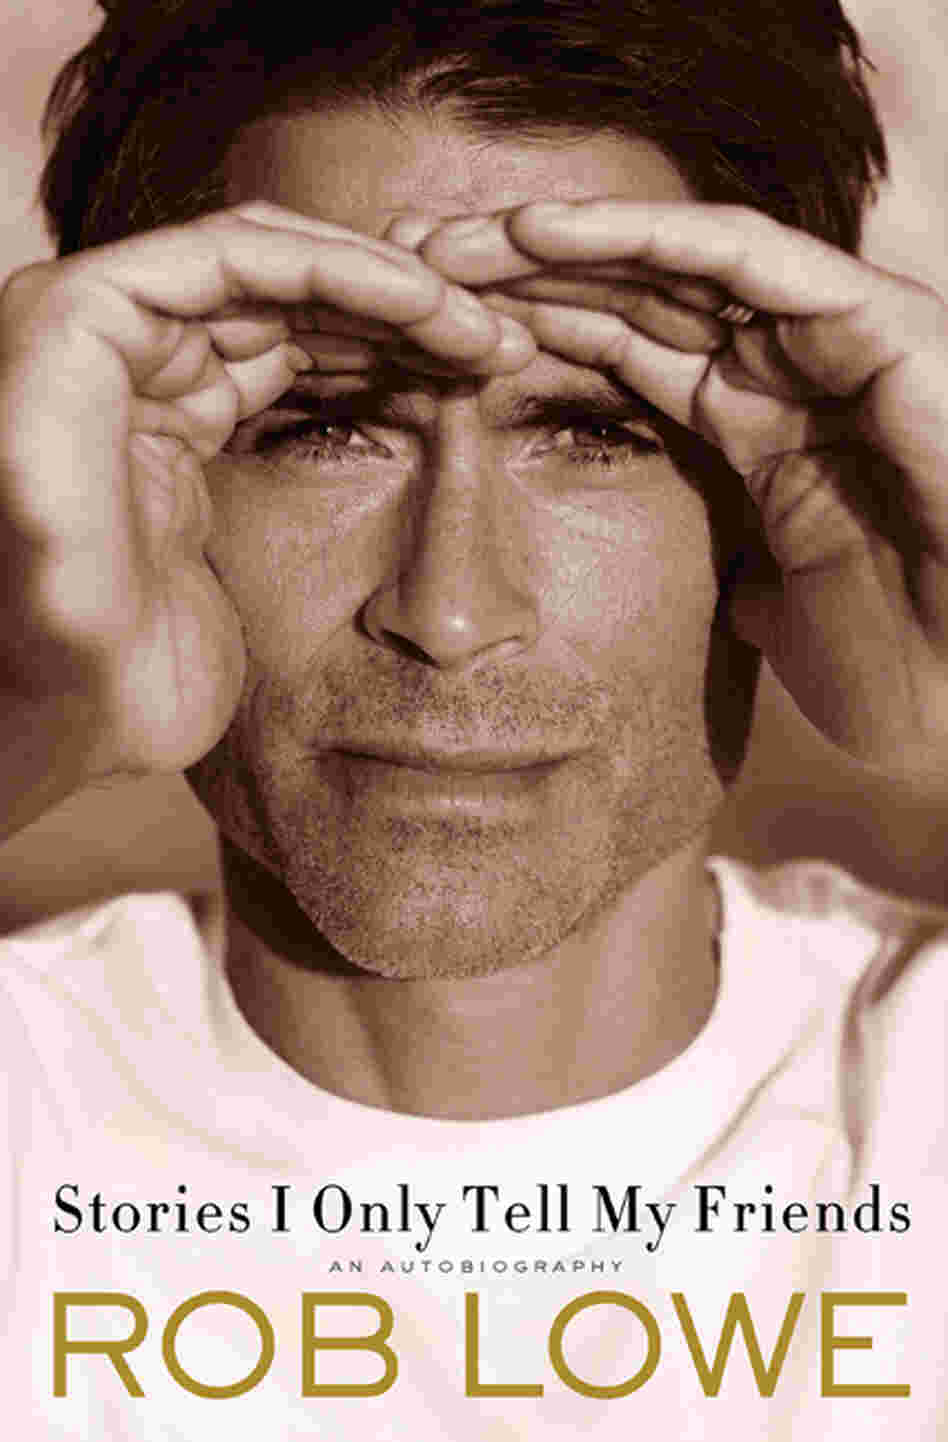 Stories I Only Tell My Friends by Rob Lowe.